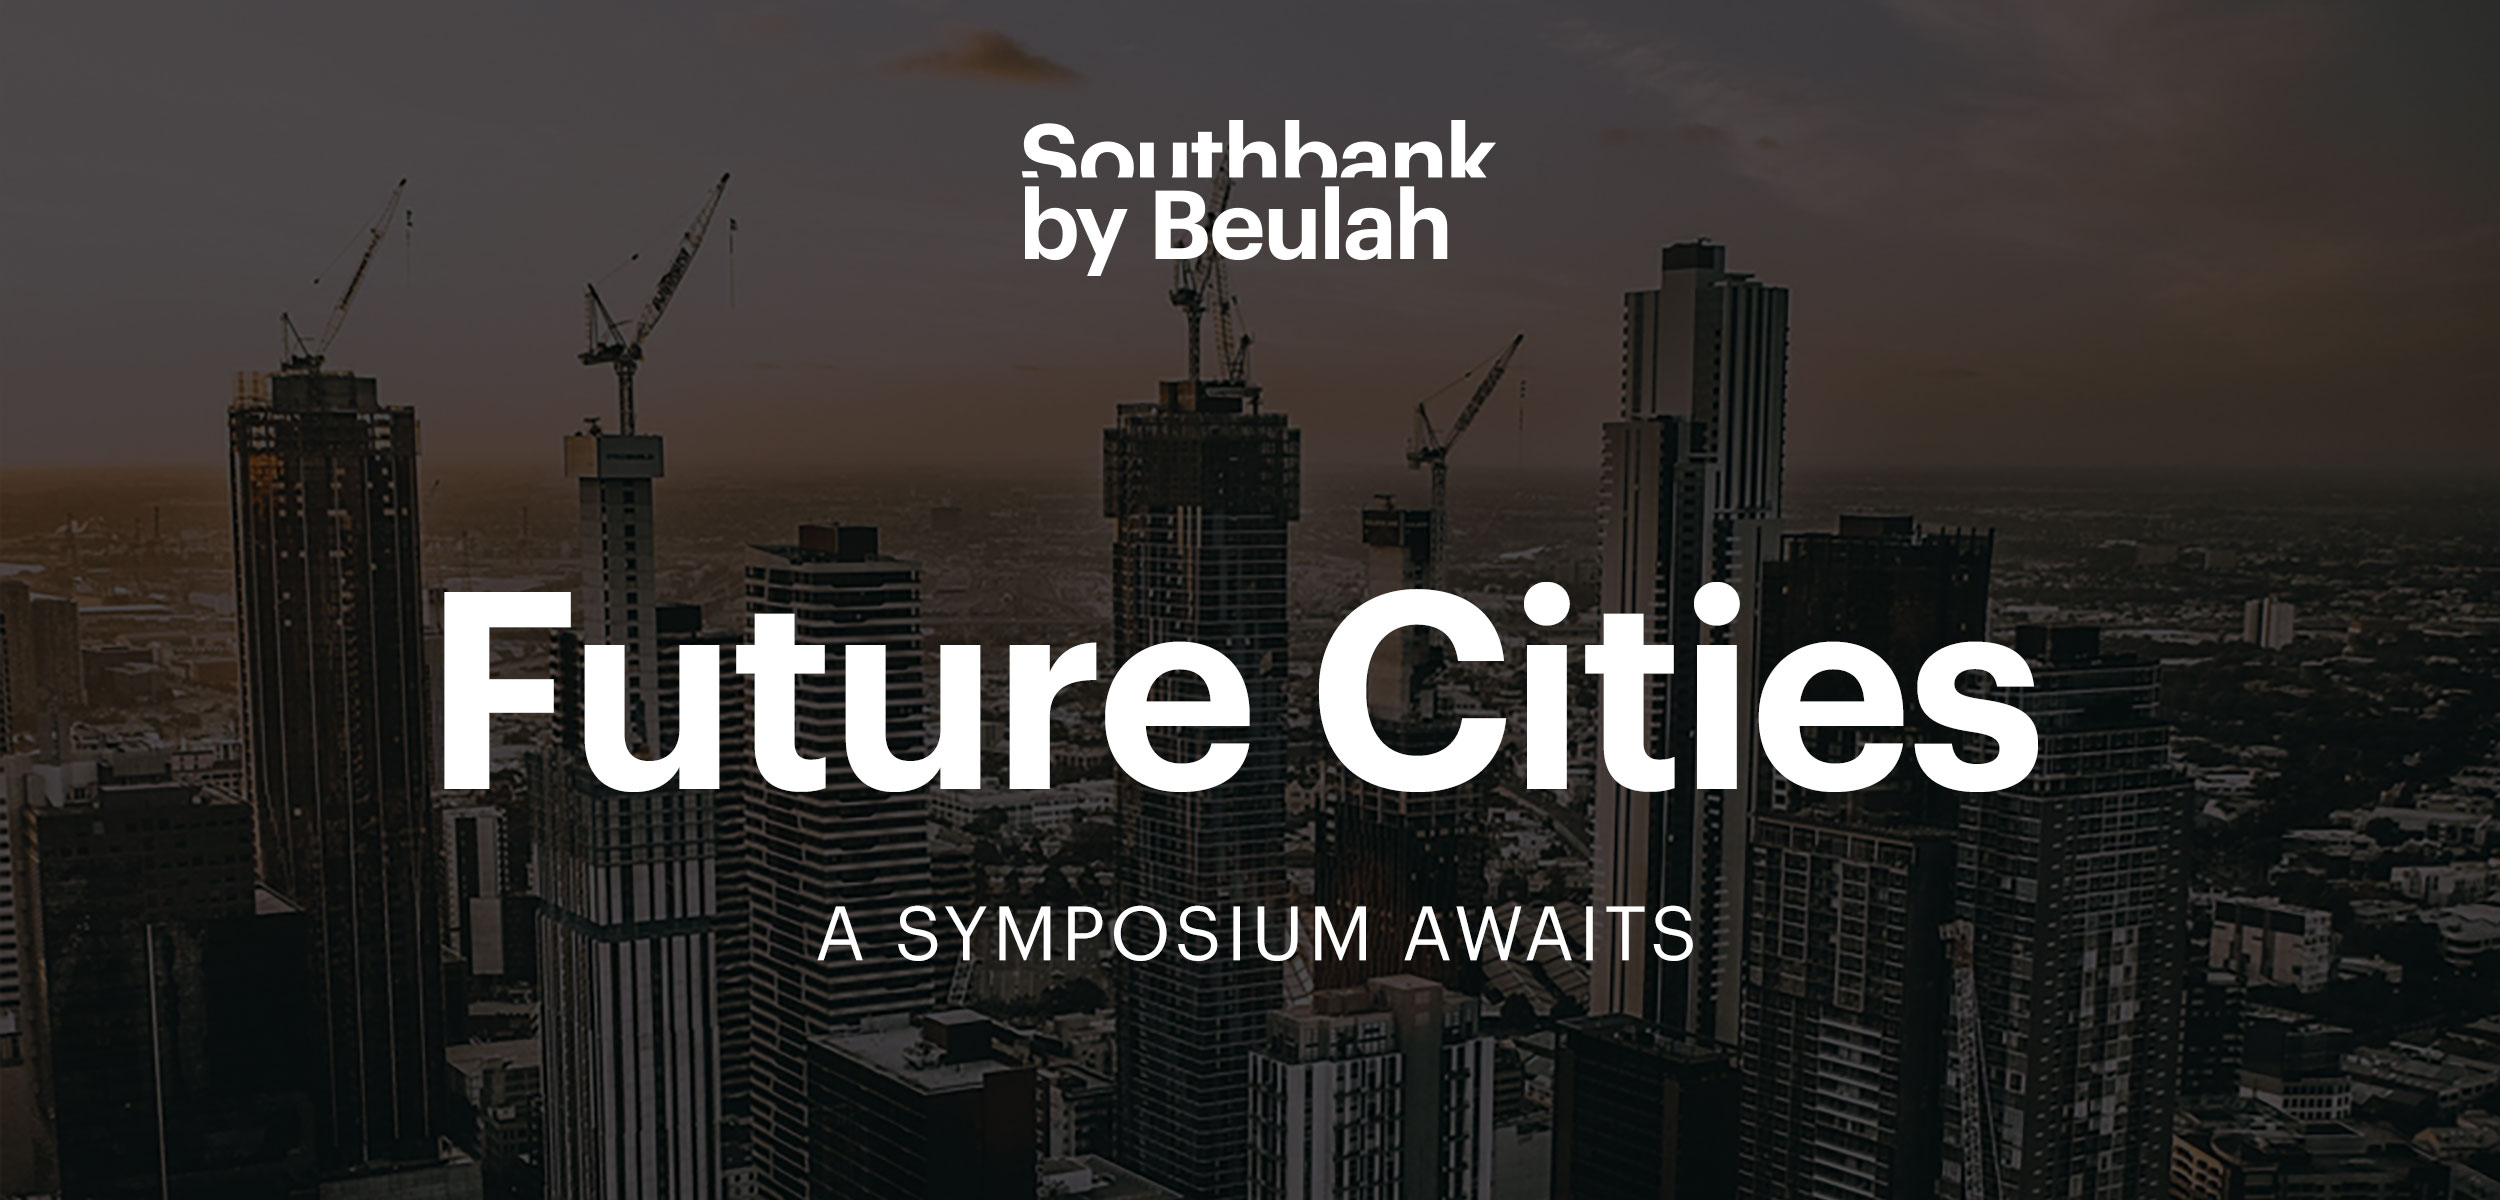 FutureCities_header04B.jpg